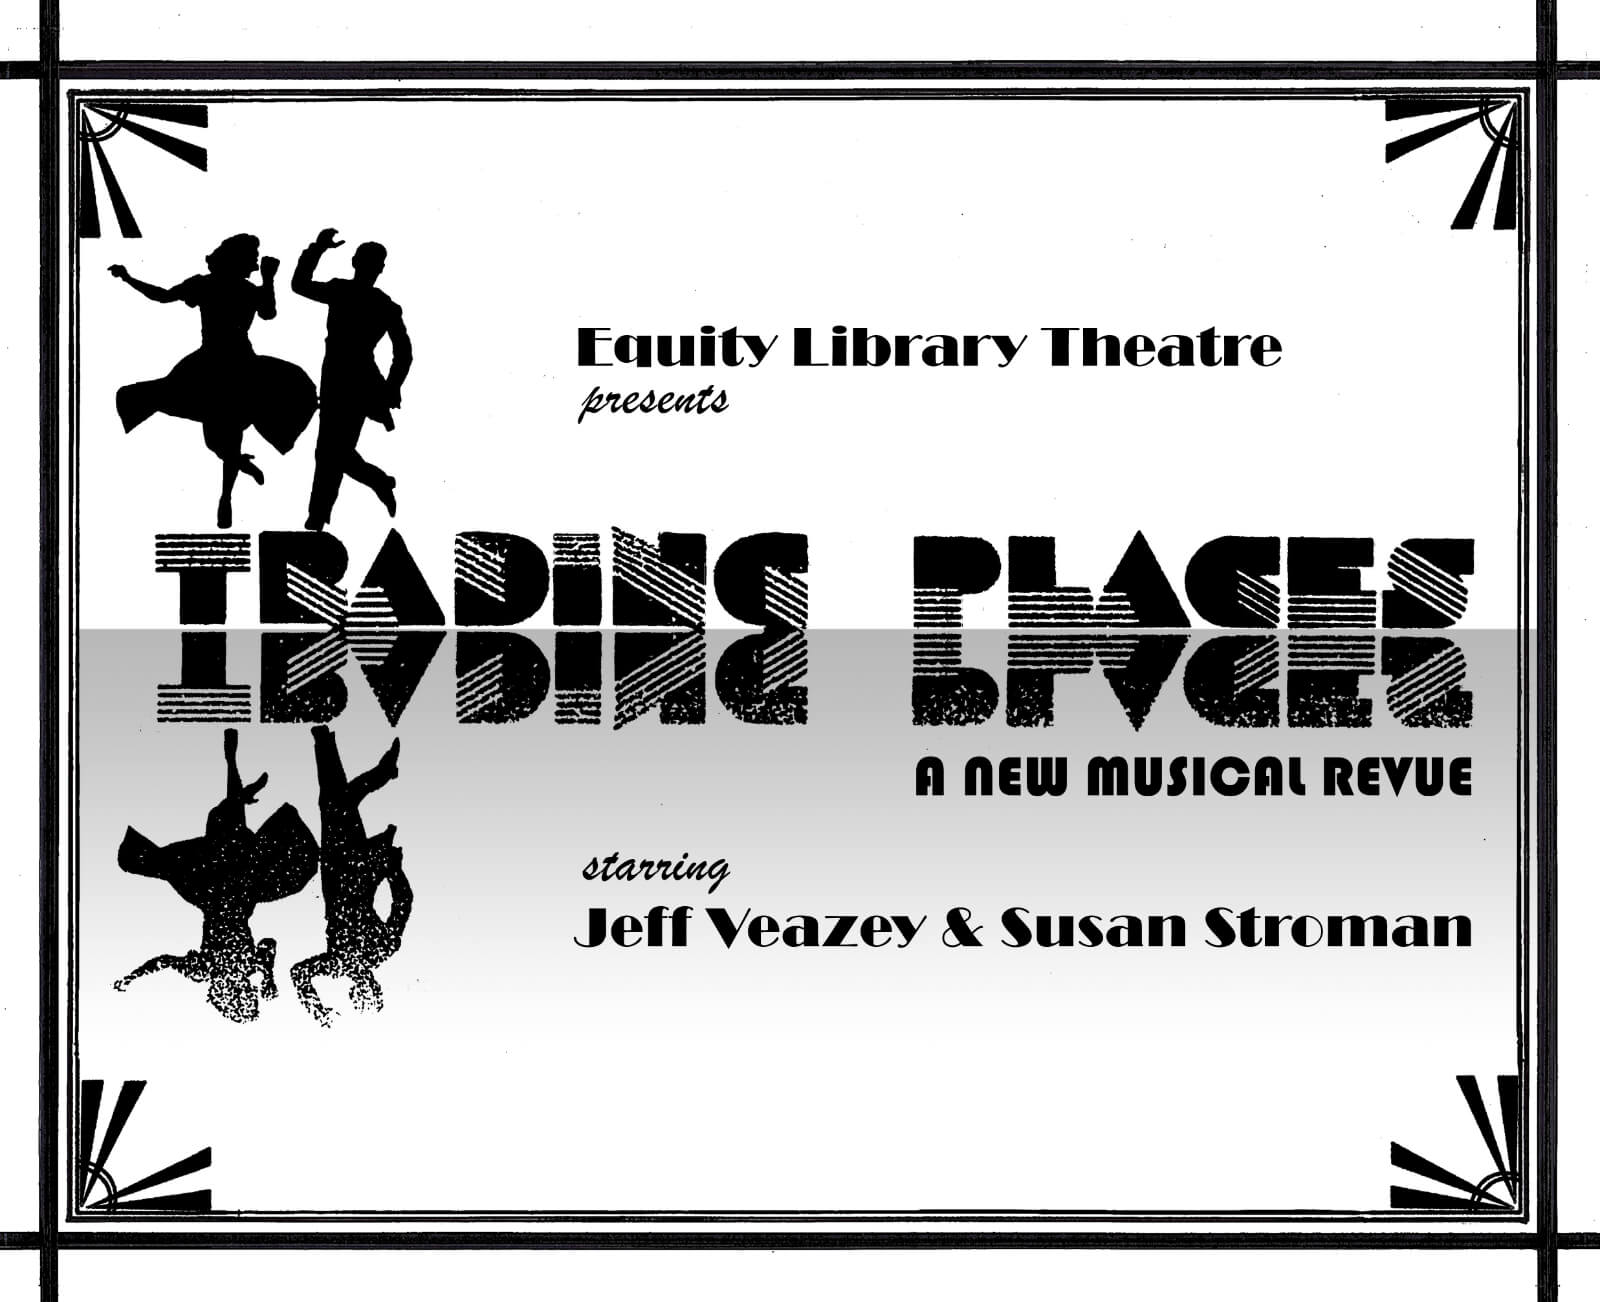 A black and white art deco poster that says Equity Library Theatre presents Trading Places: A New Musical Revue starring Jeff Veazey and Susan Stroman.